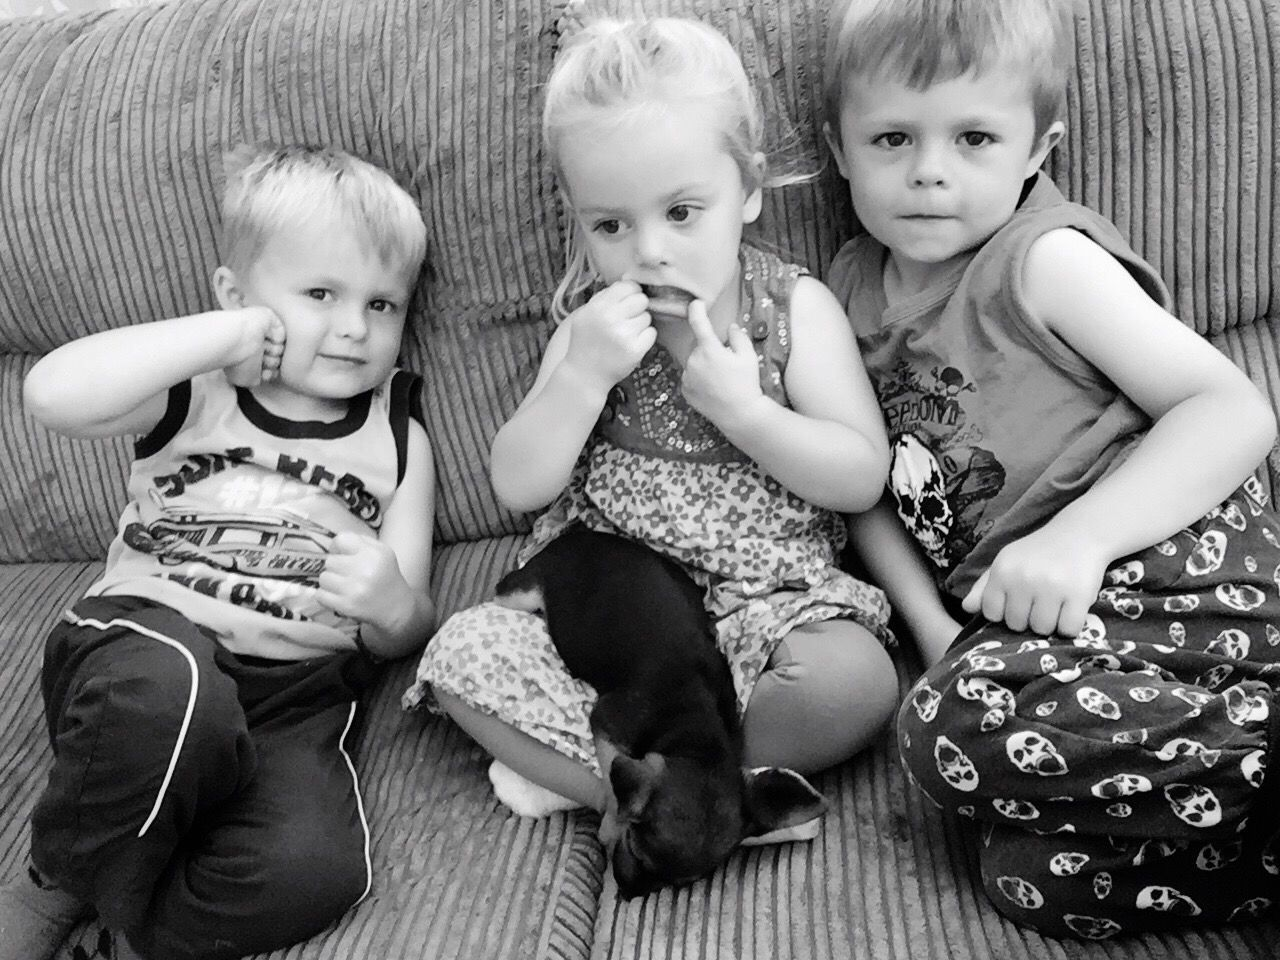 innocence, childhood, baby, real people, cute, sitting, babyhood, looking at camera, togetherness, casual clothing, love, indoors, bonding, full length, girls, portrait, happiness, lifestyles, boys, day, animal themes, pets, mammal, people